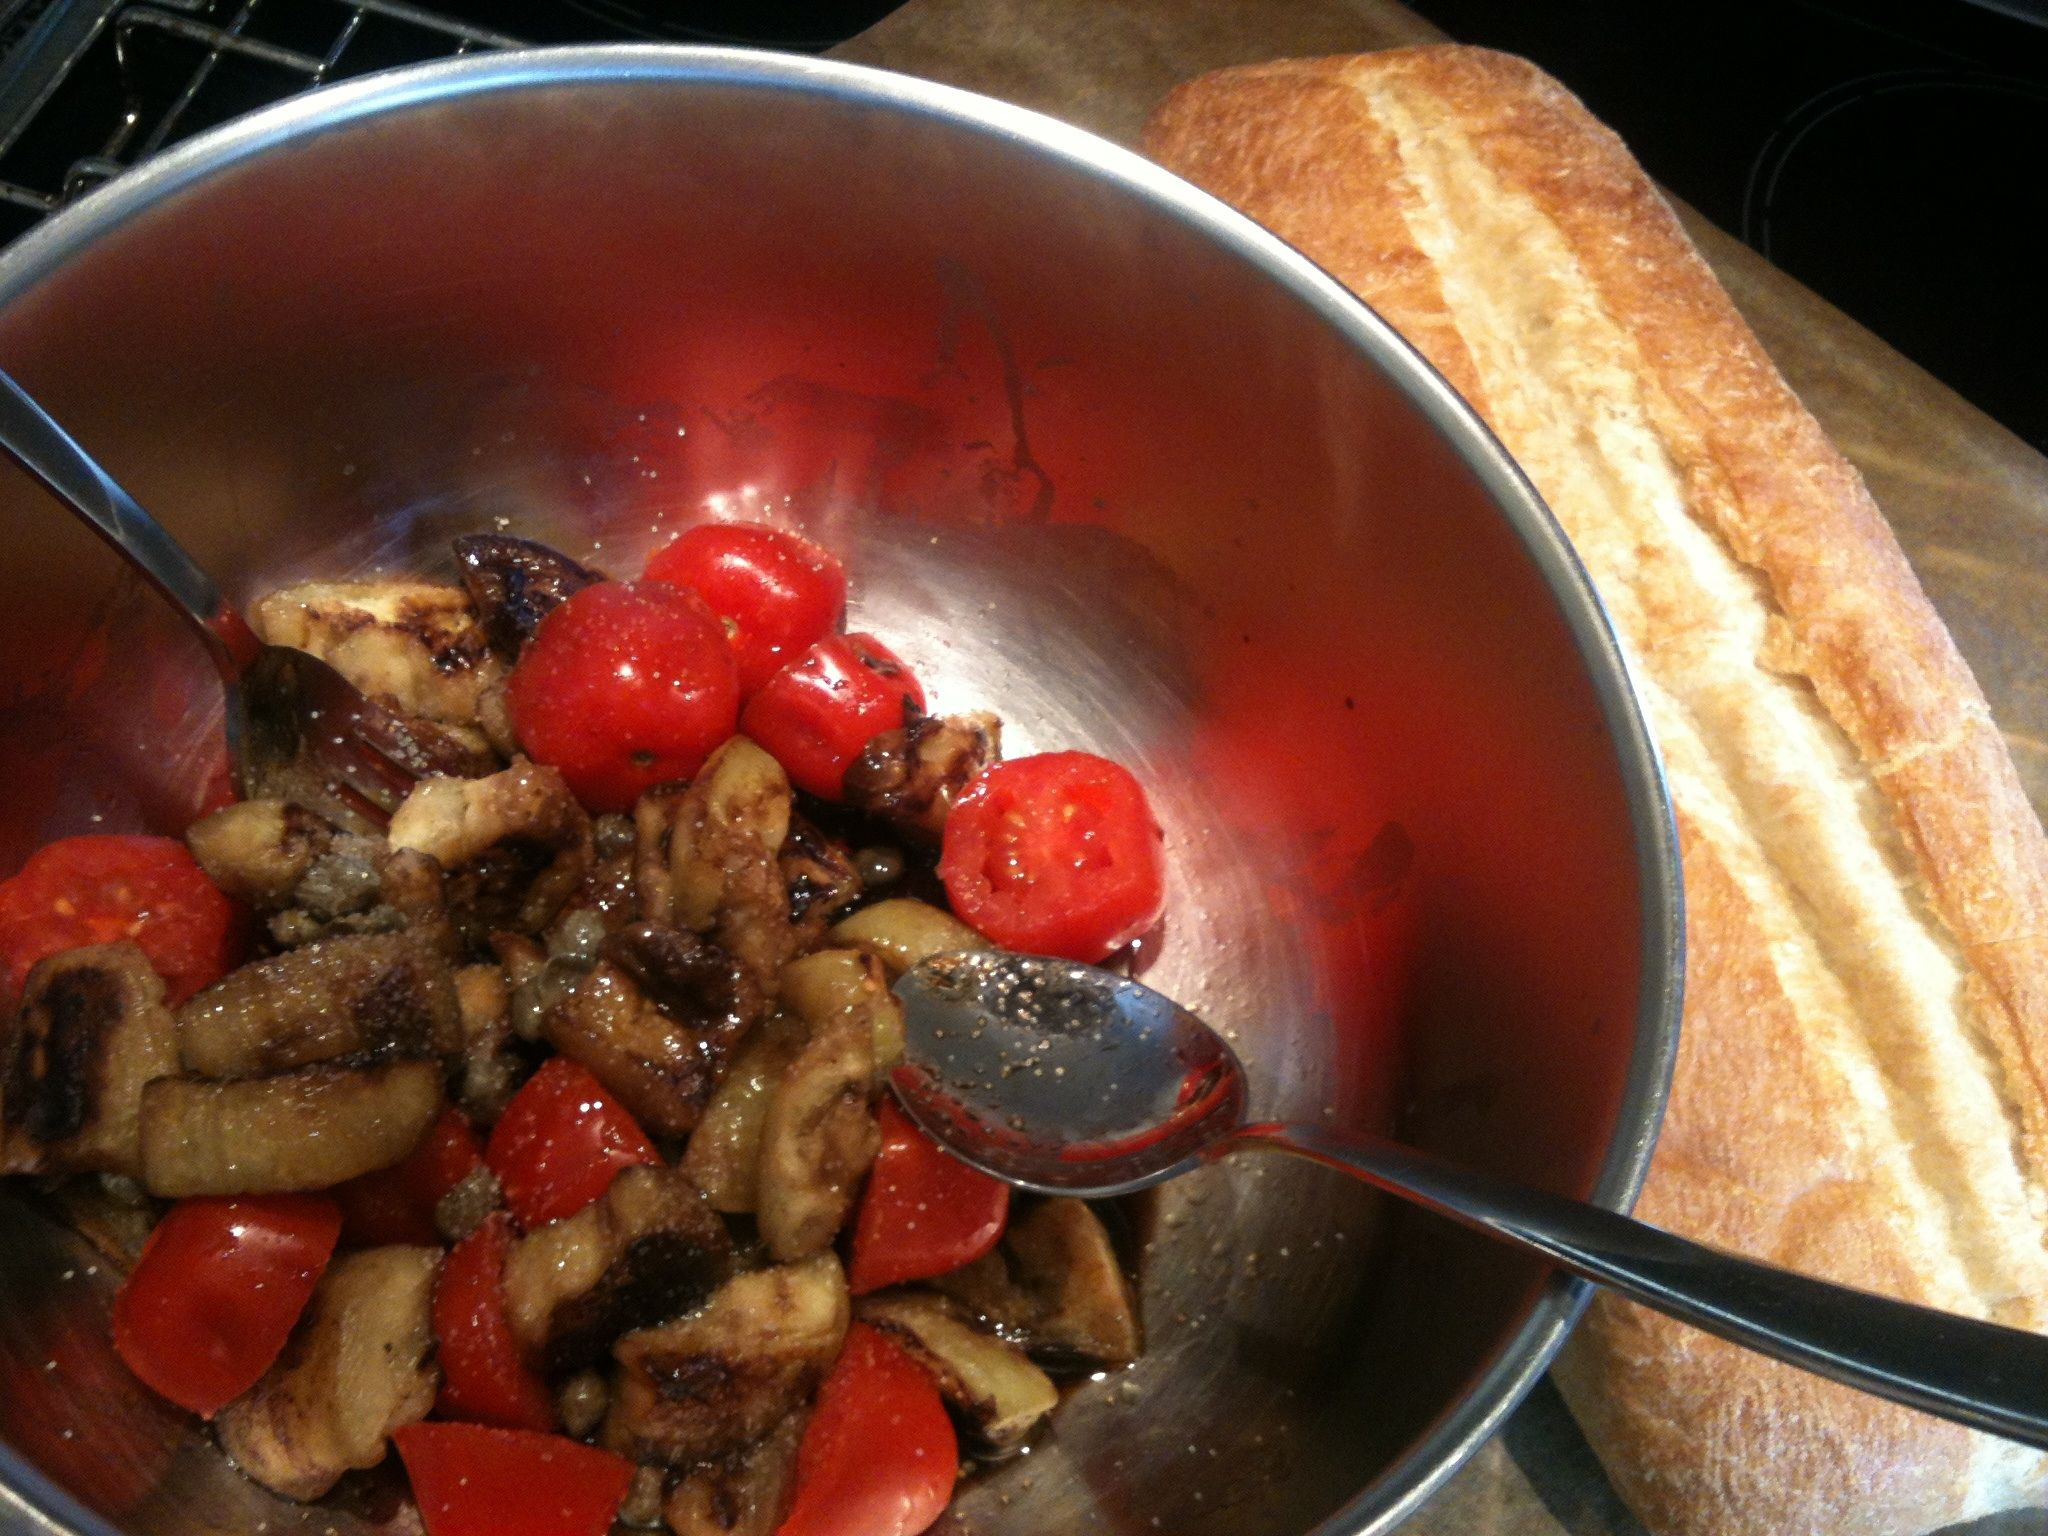 Pan-fried Eggplant Salad with Tomatoes